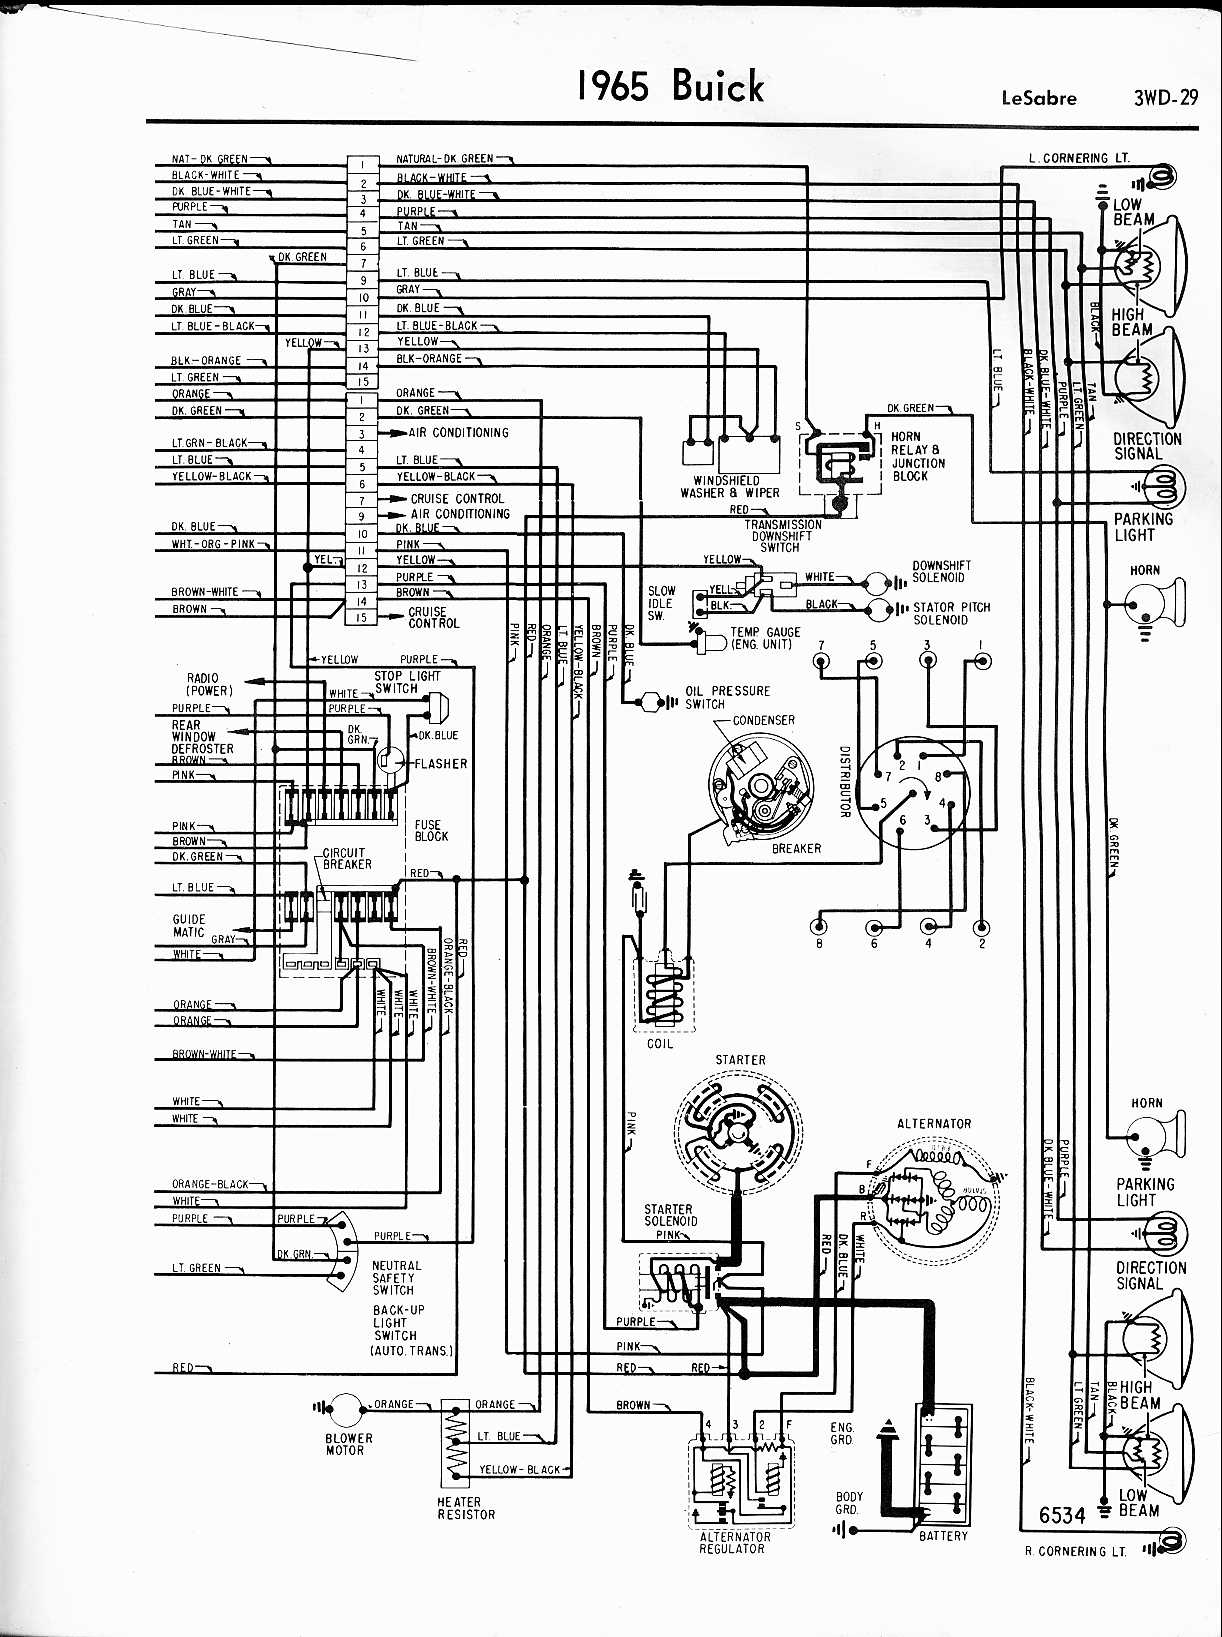 2001 Ford Mustang Fuse Box Location Wiring Library Block Diagram For 1967 Buick Diagrams 1957 1965 Rh Oldcarmanualproject Com Century Free